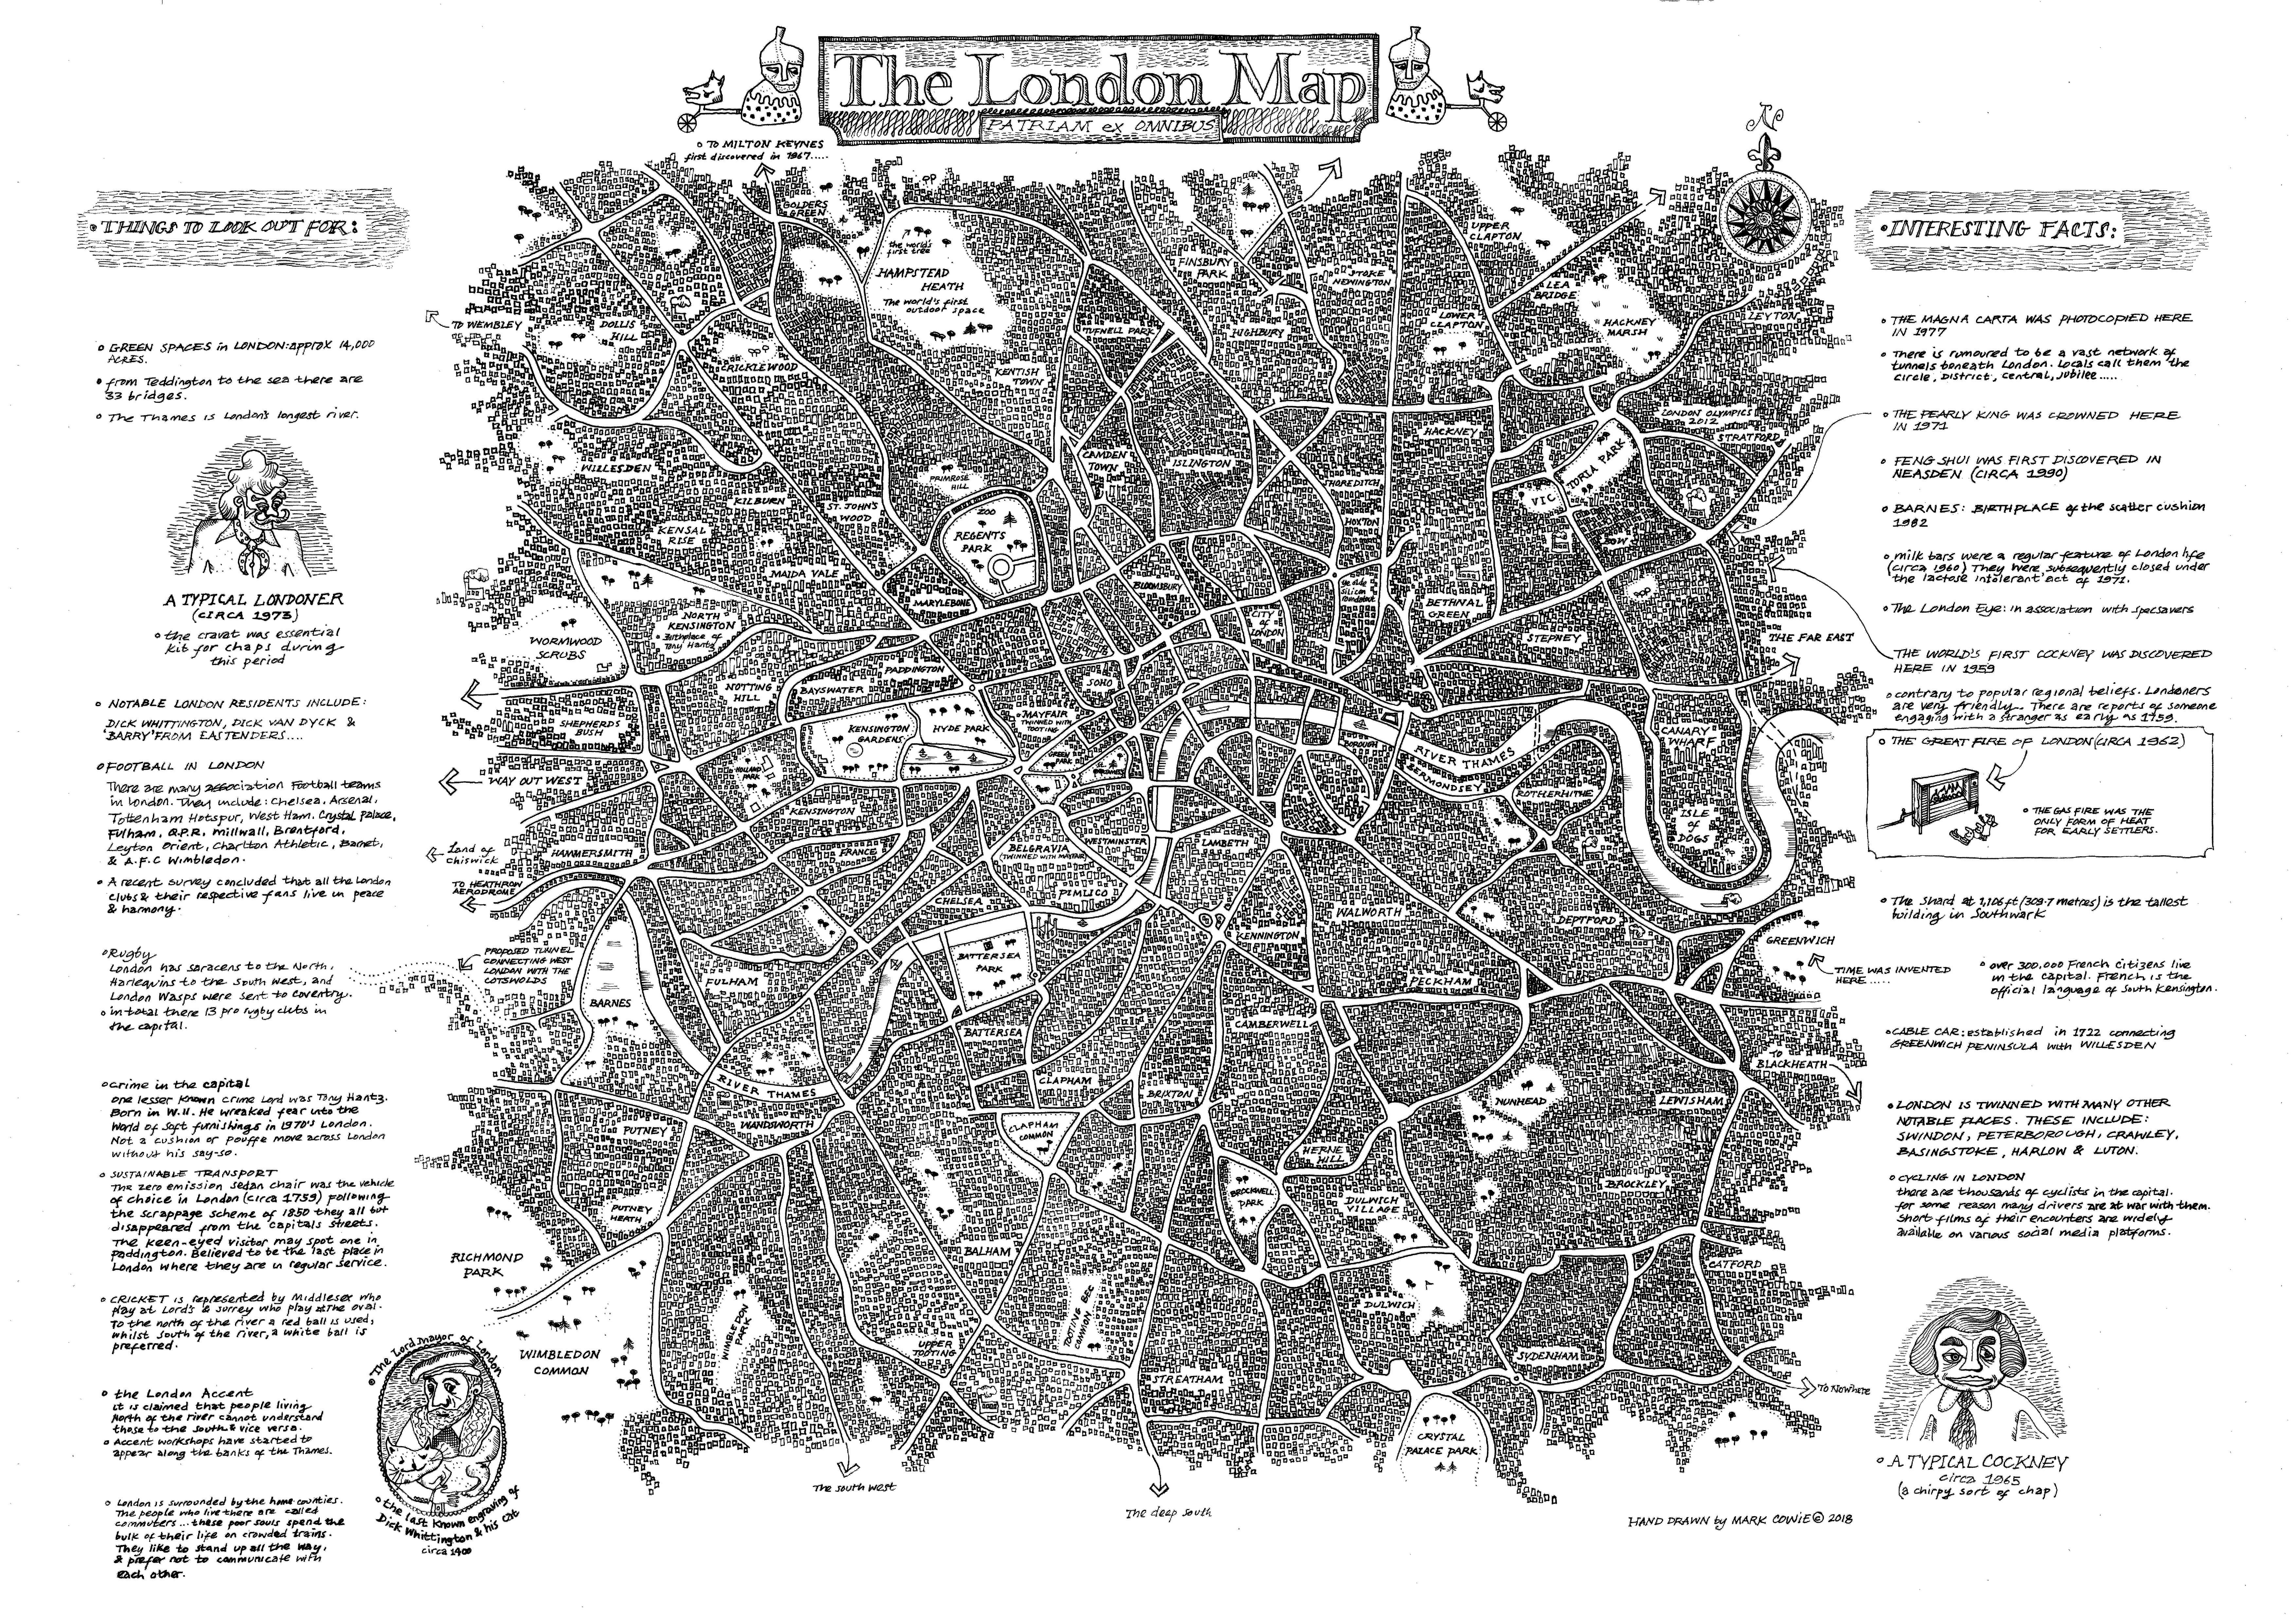 eefffda3181 This Mischievous London Map Will Make You Giggle